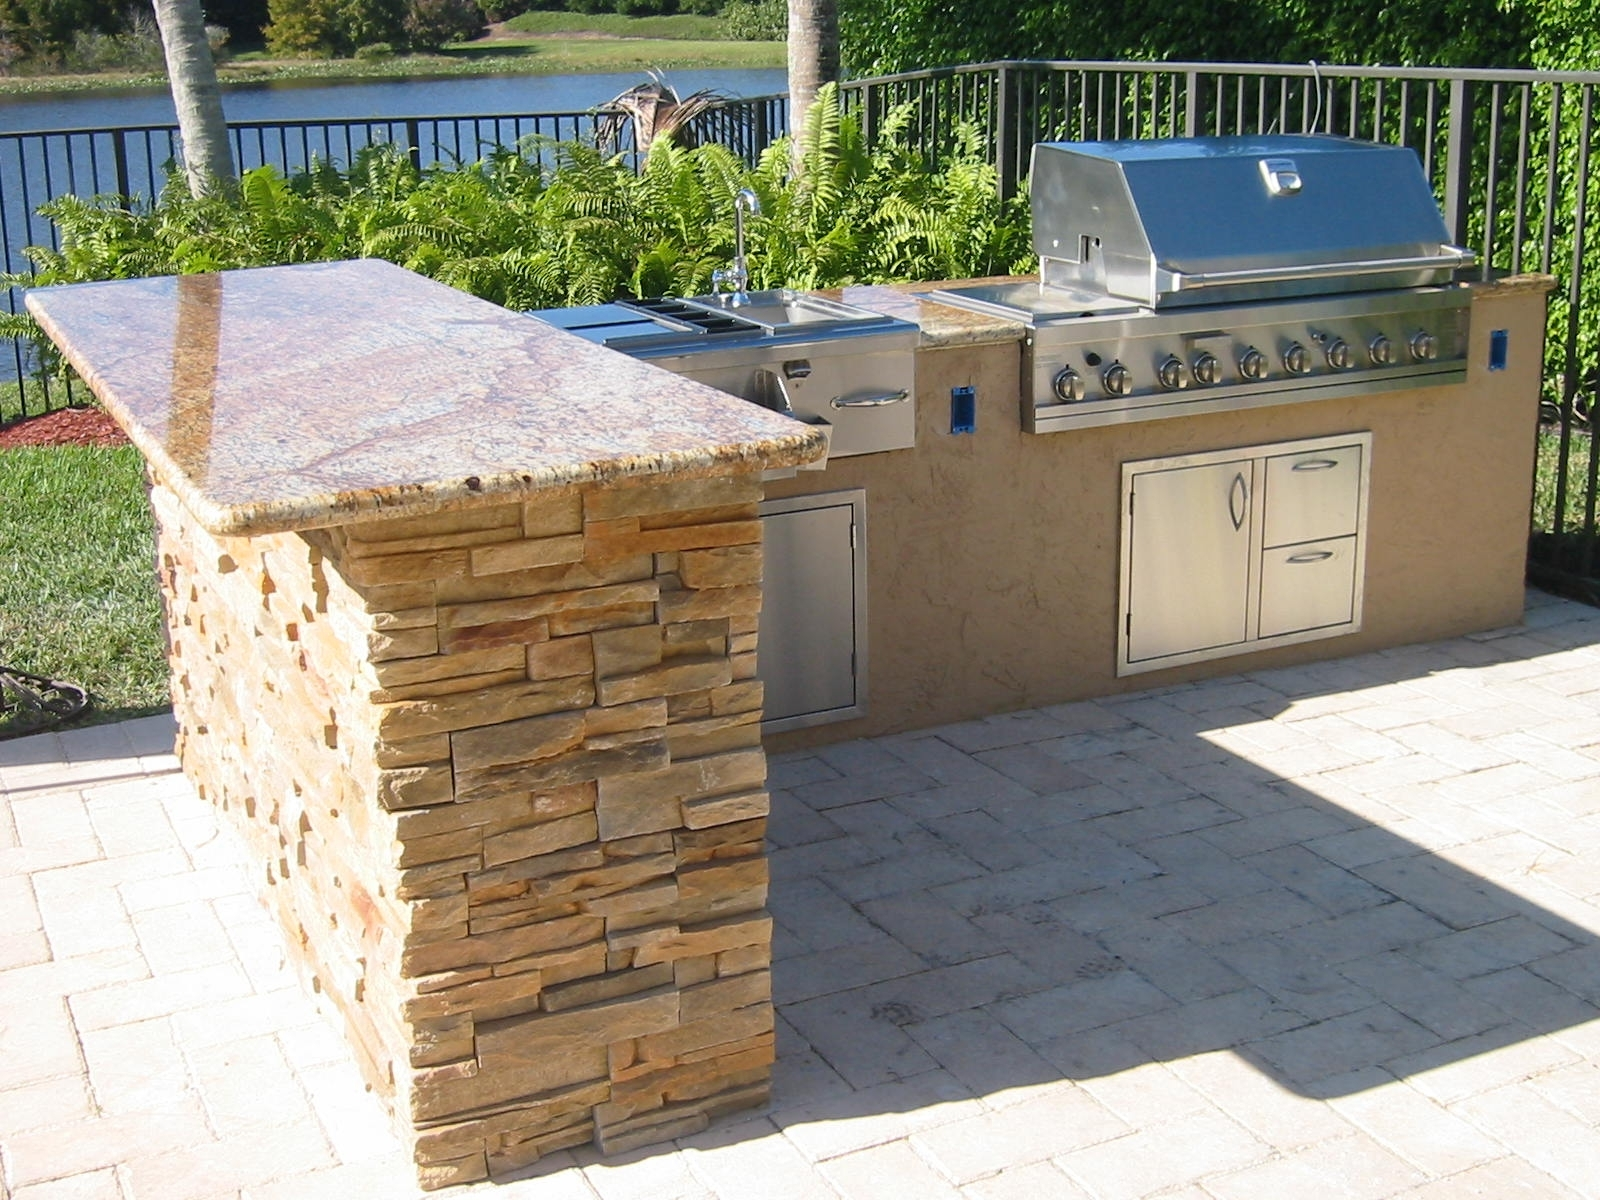 Diy Outdoor Grill Islands With Concrete - Madison Art ... on Diy Patio Grill Island id=72219